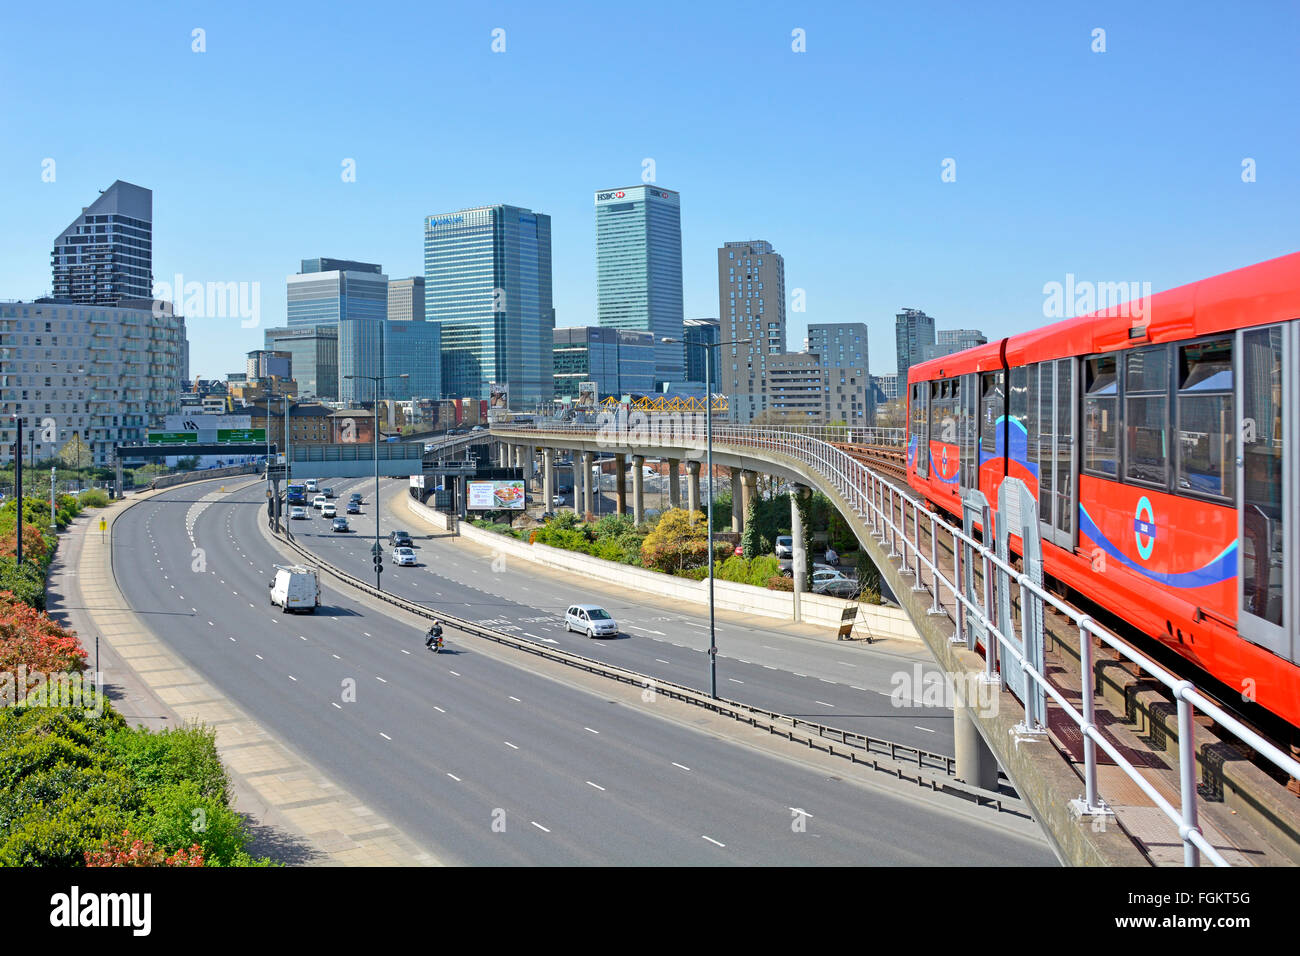 Canary Wharf skyline DLR train leaves East India station in London Docklands & crosses Aspen Way dual carriageway - Stock Image